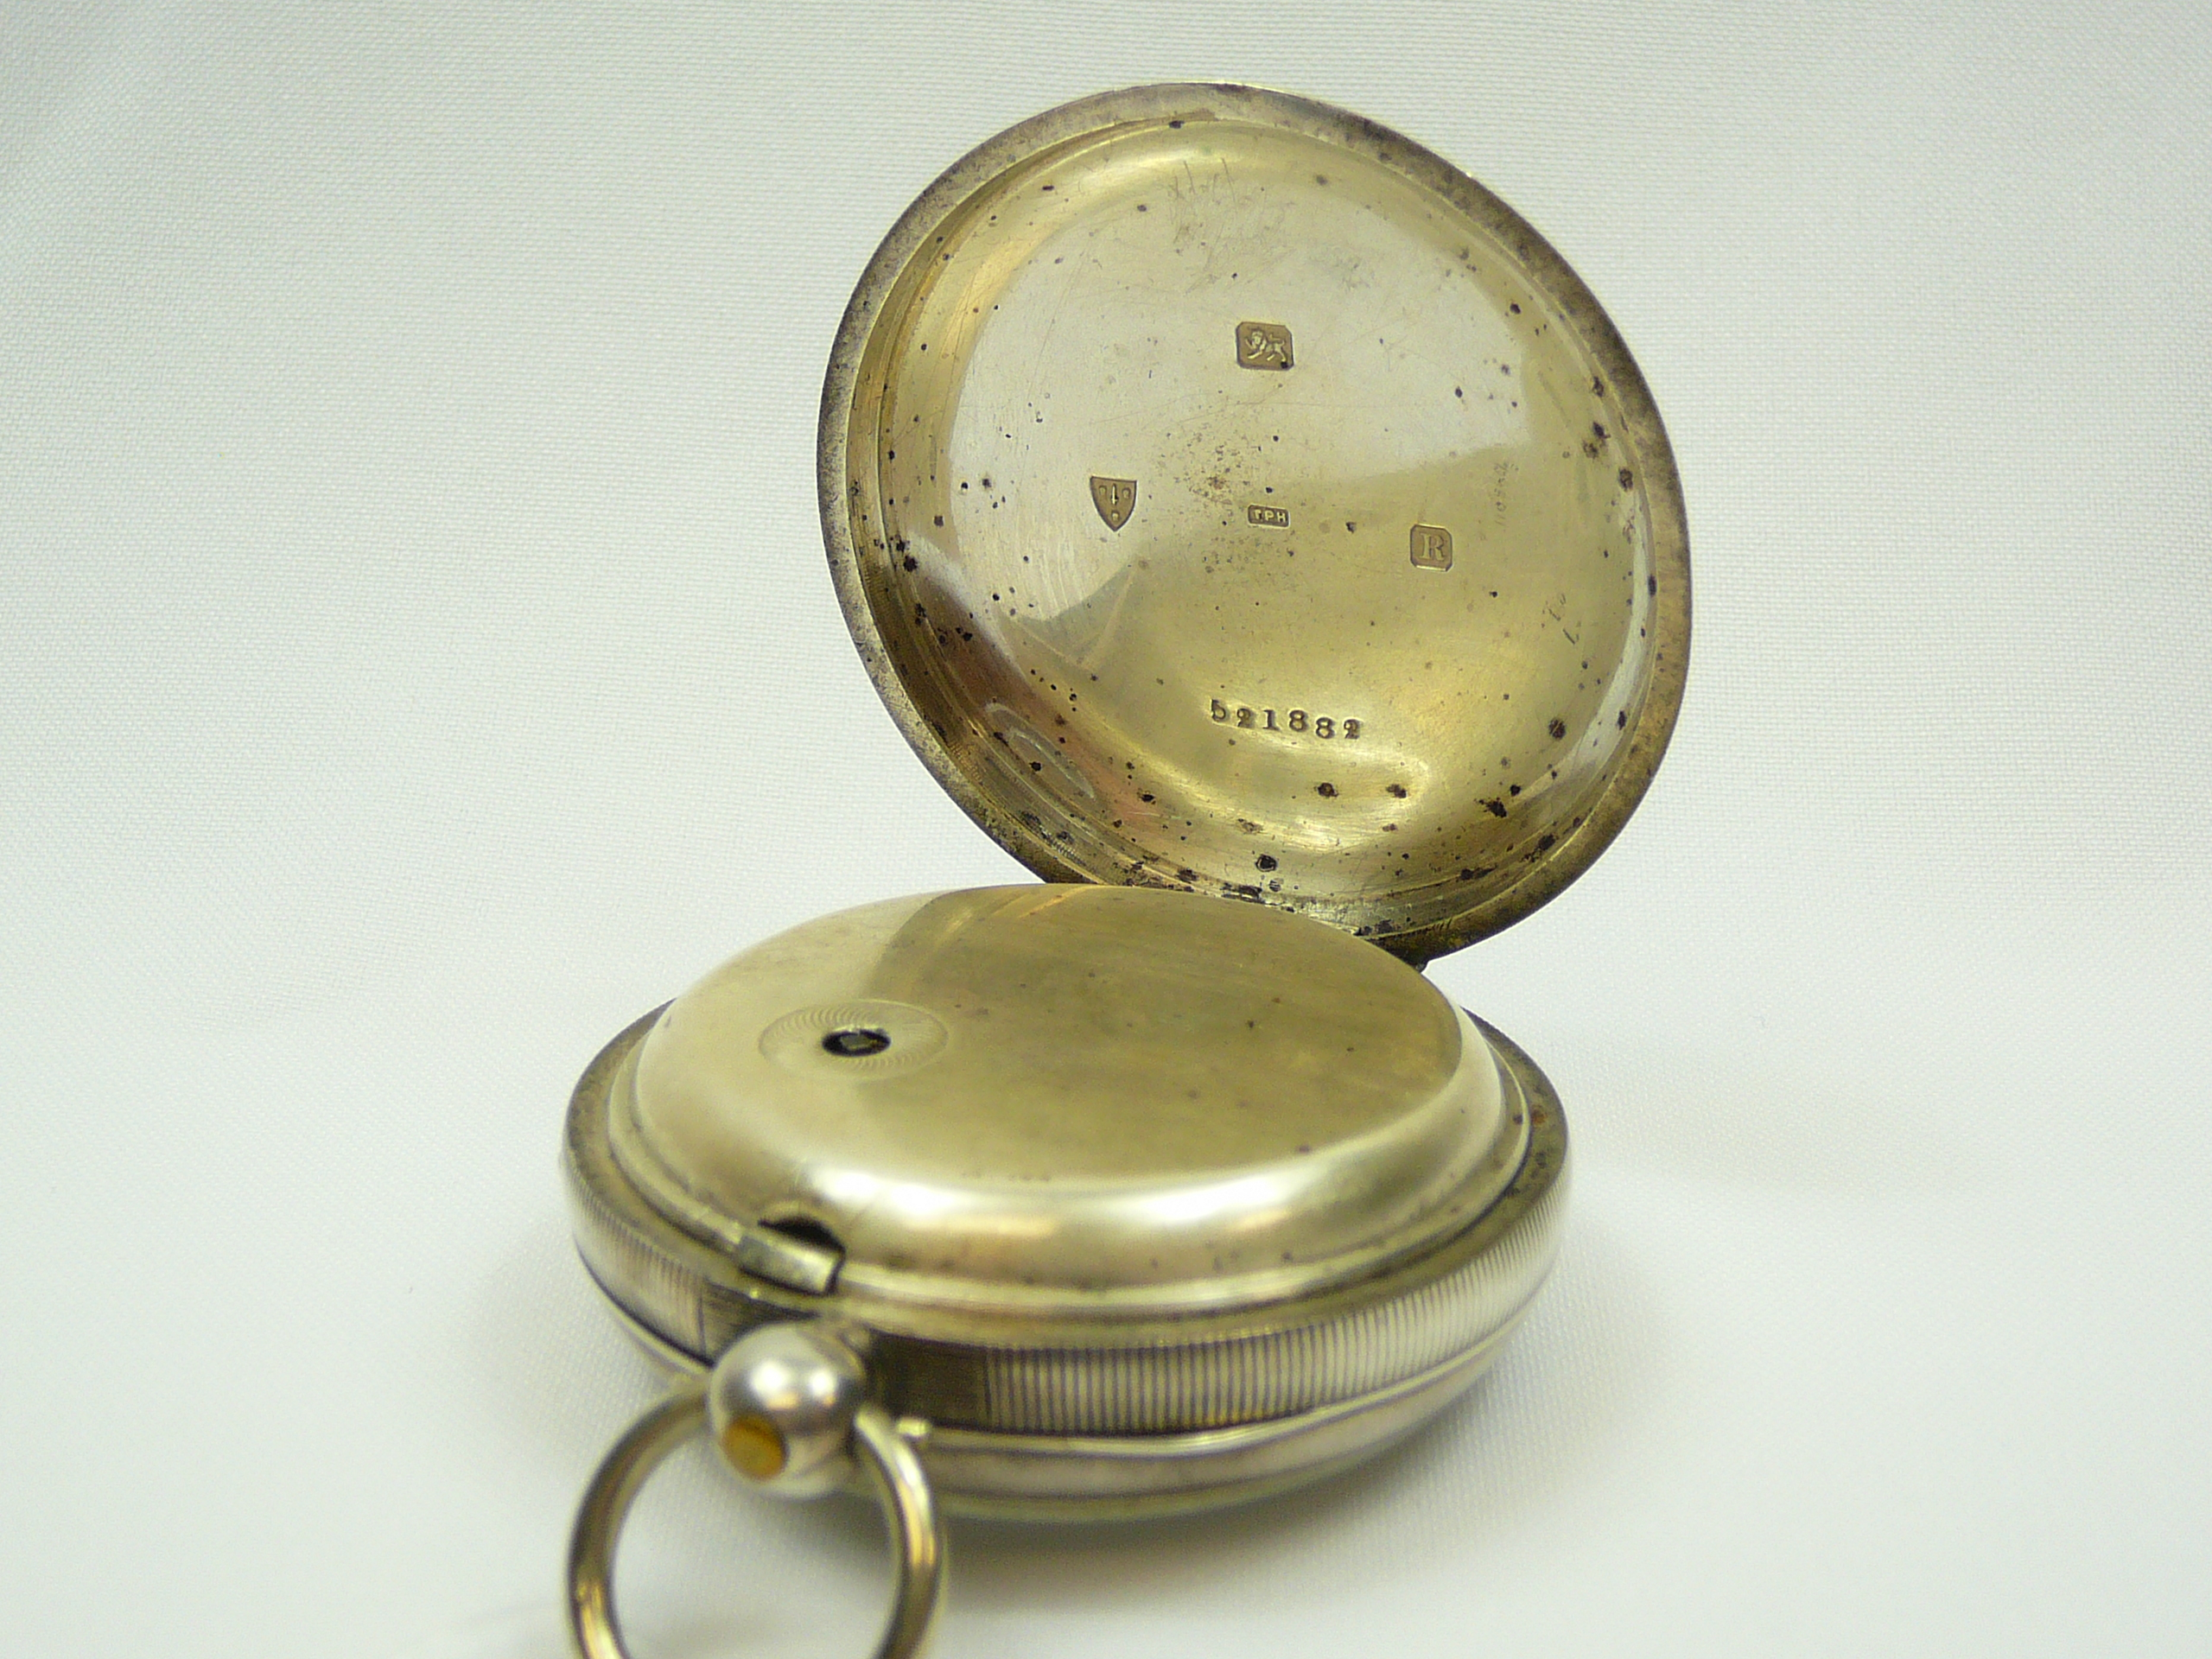 Gents Silver Pocket Watch - Image 2 of 4